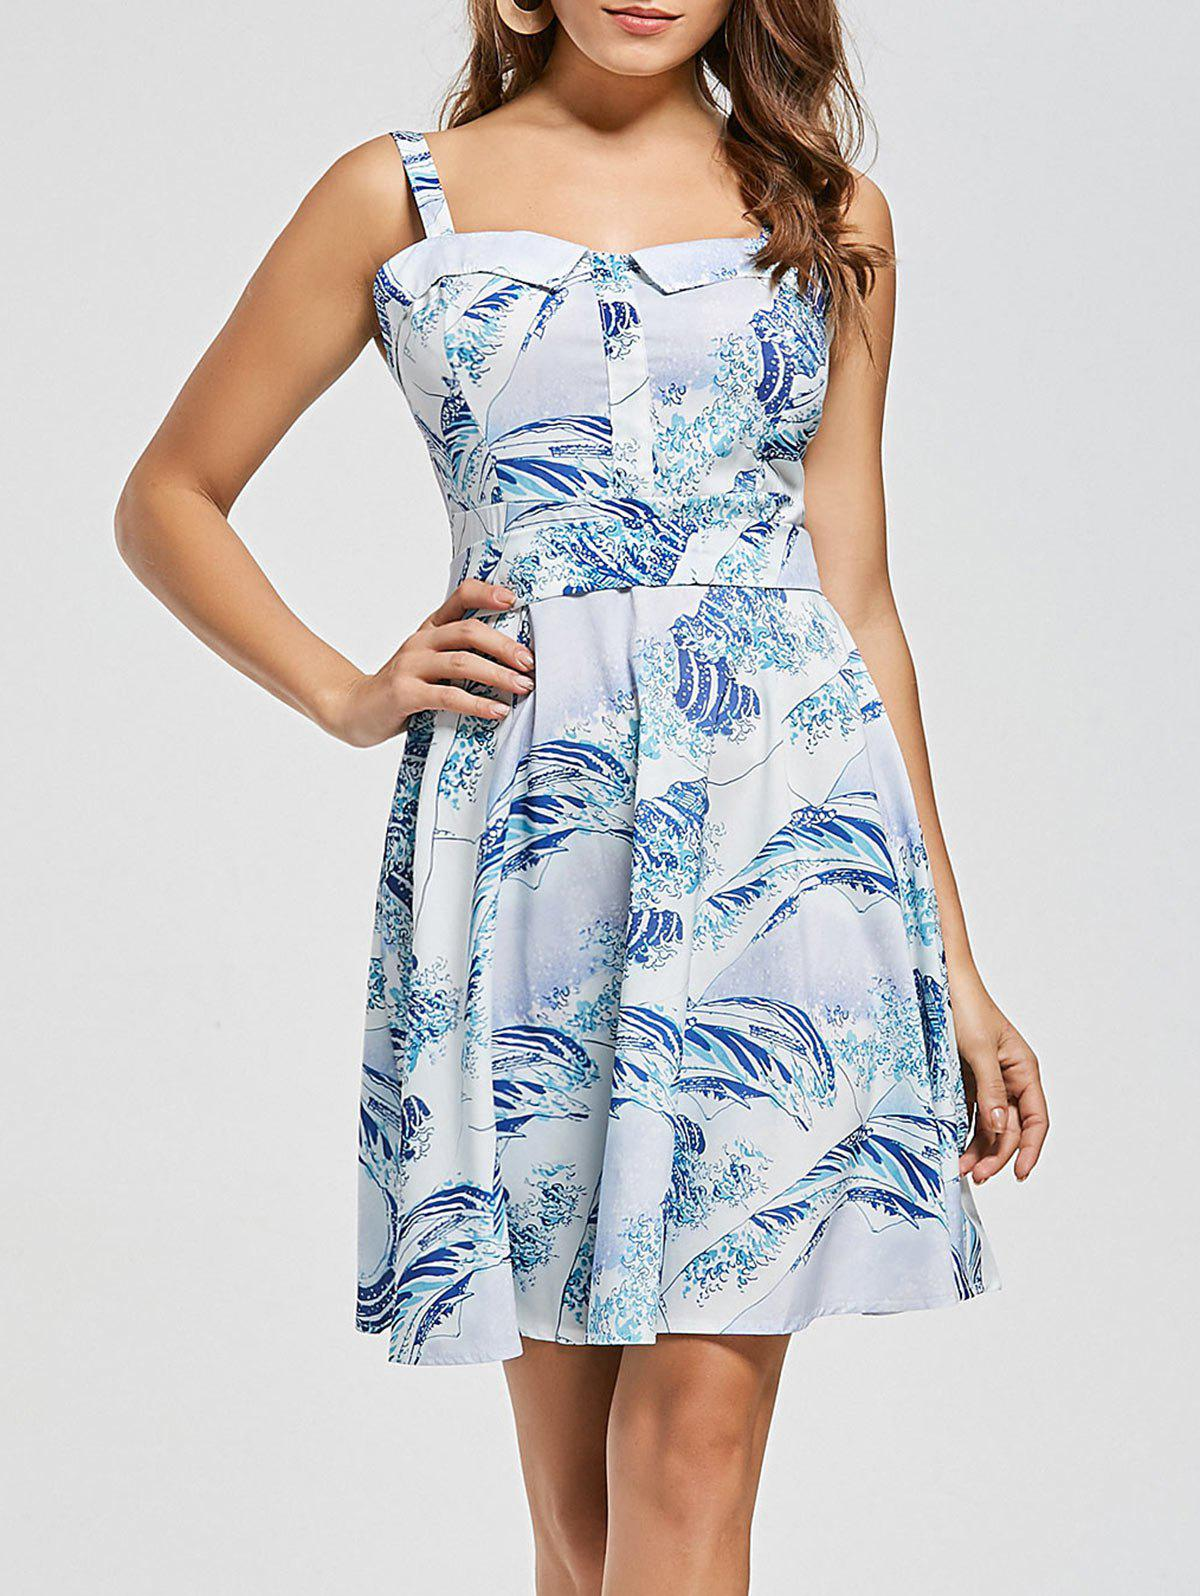 Vintage Sea Wave Print Skater Dress - LIGHT BLUE L